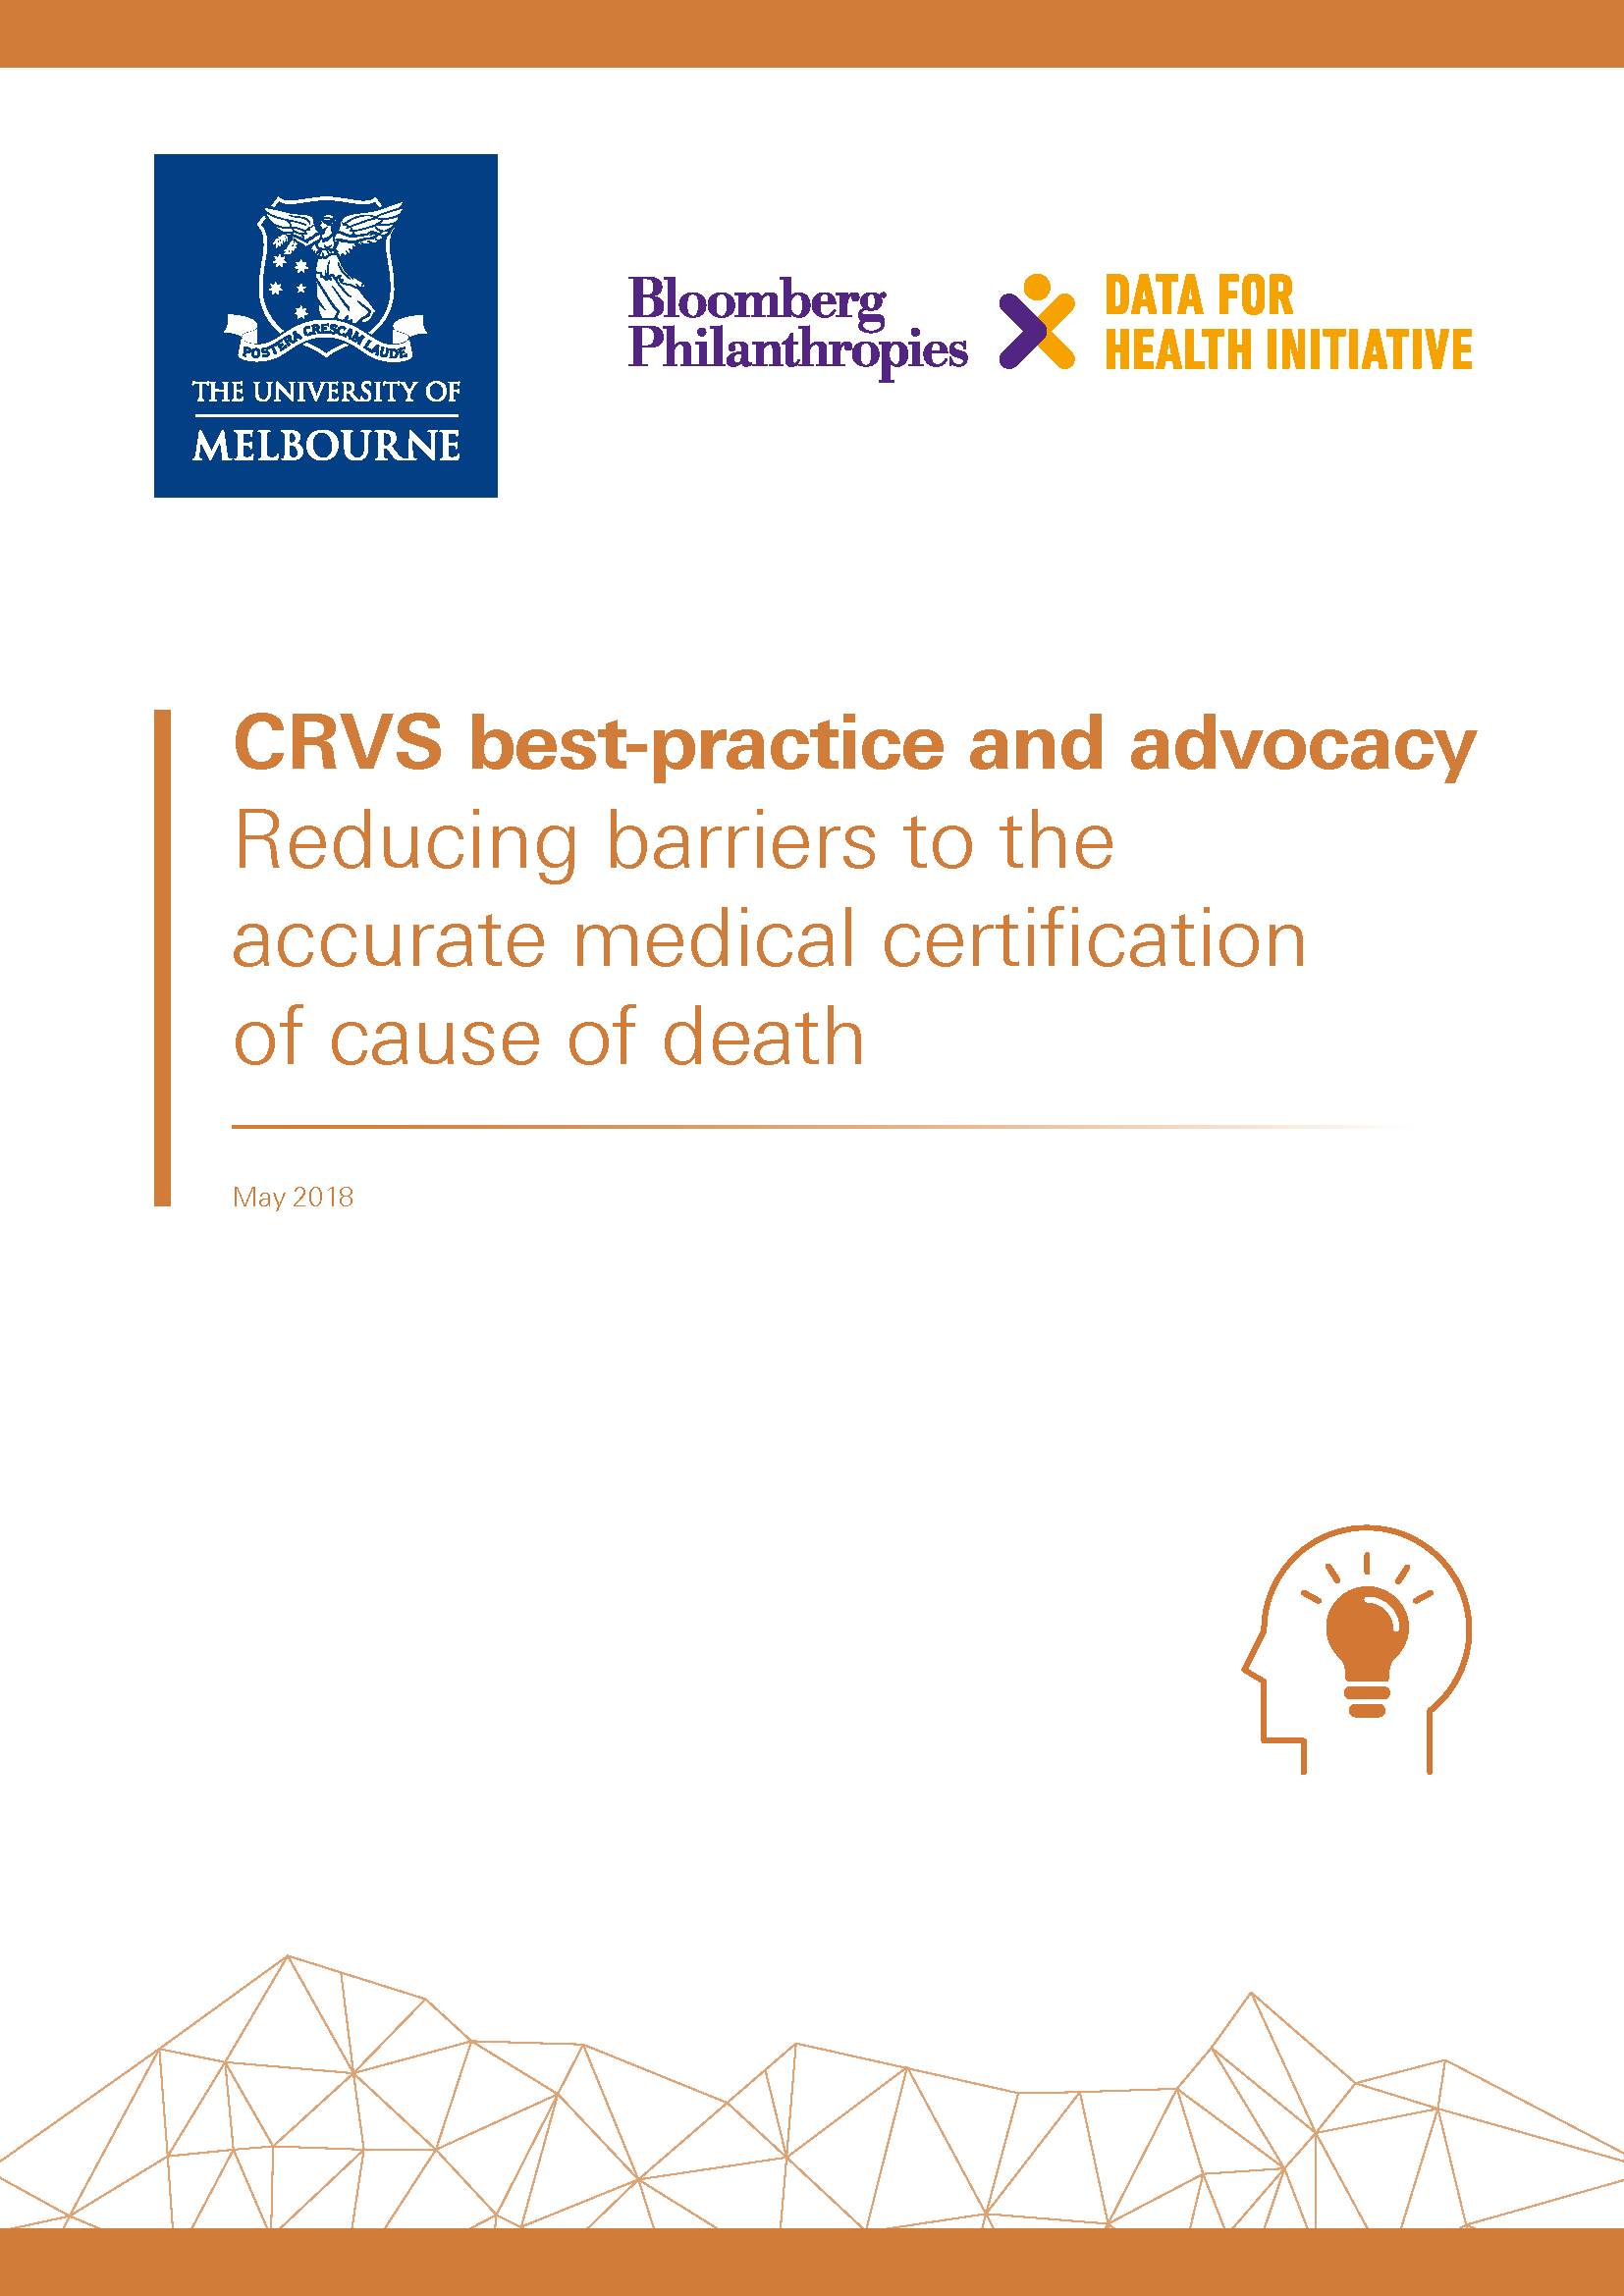 Reducing barriers to the accurate medical certification of cause of death thumbnail